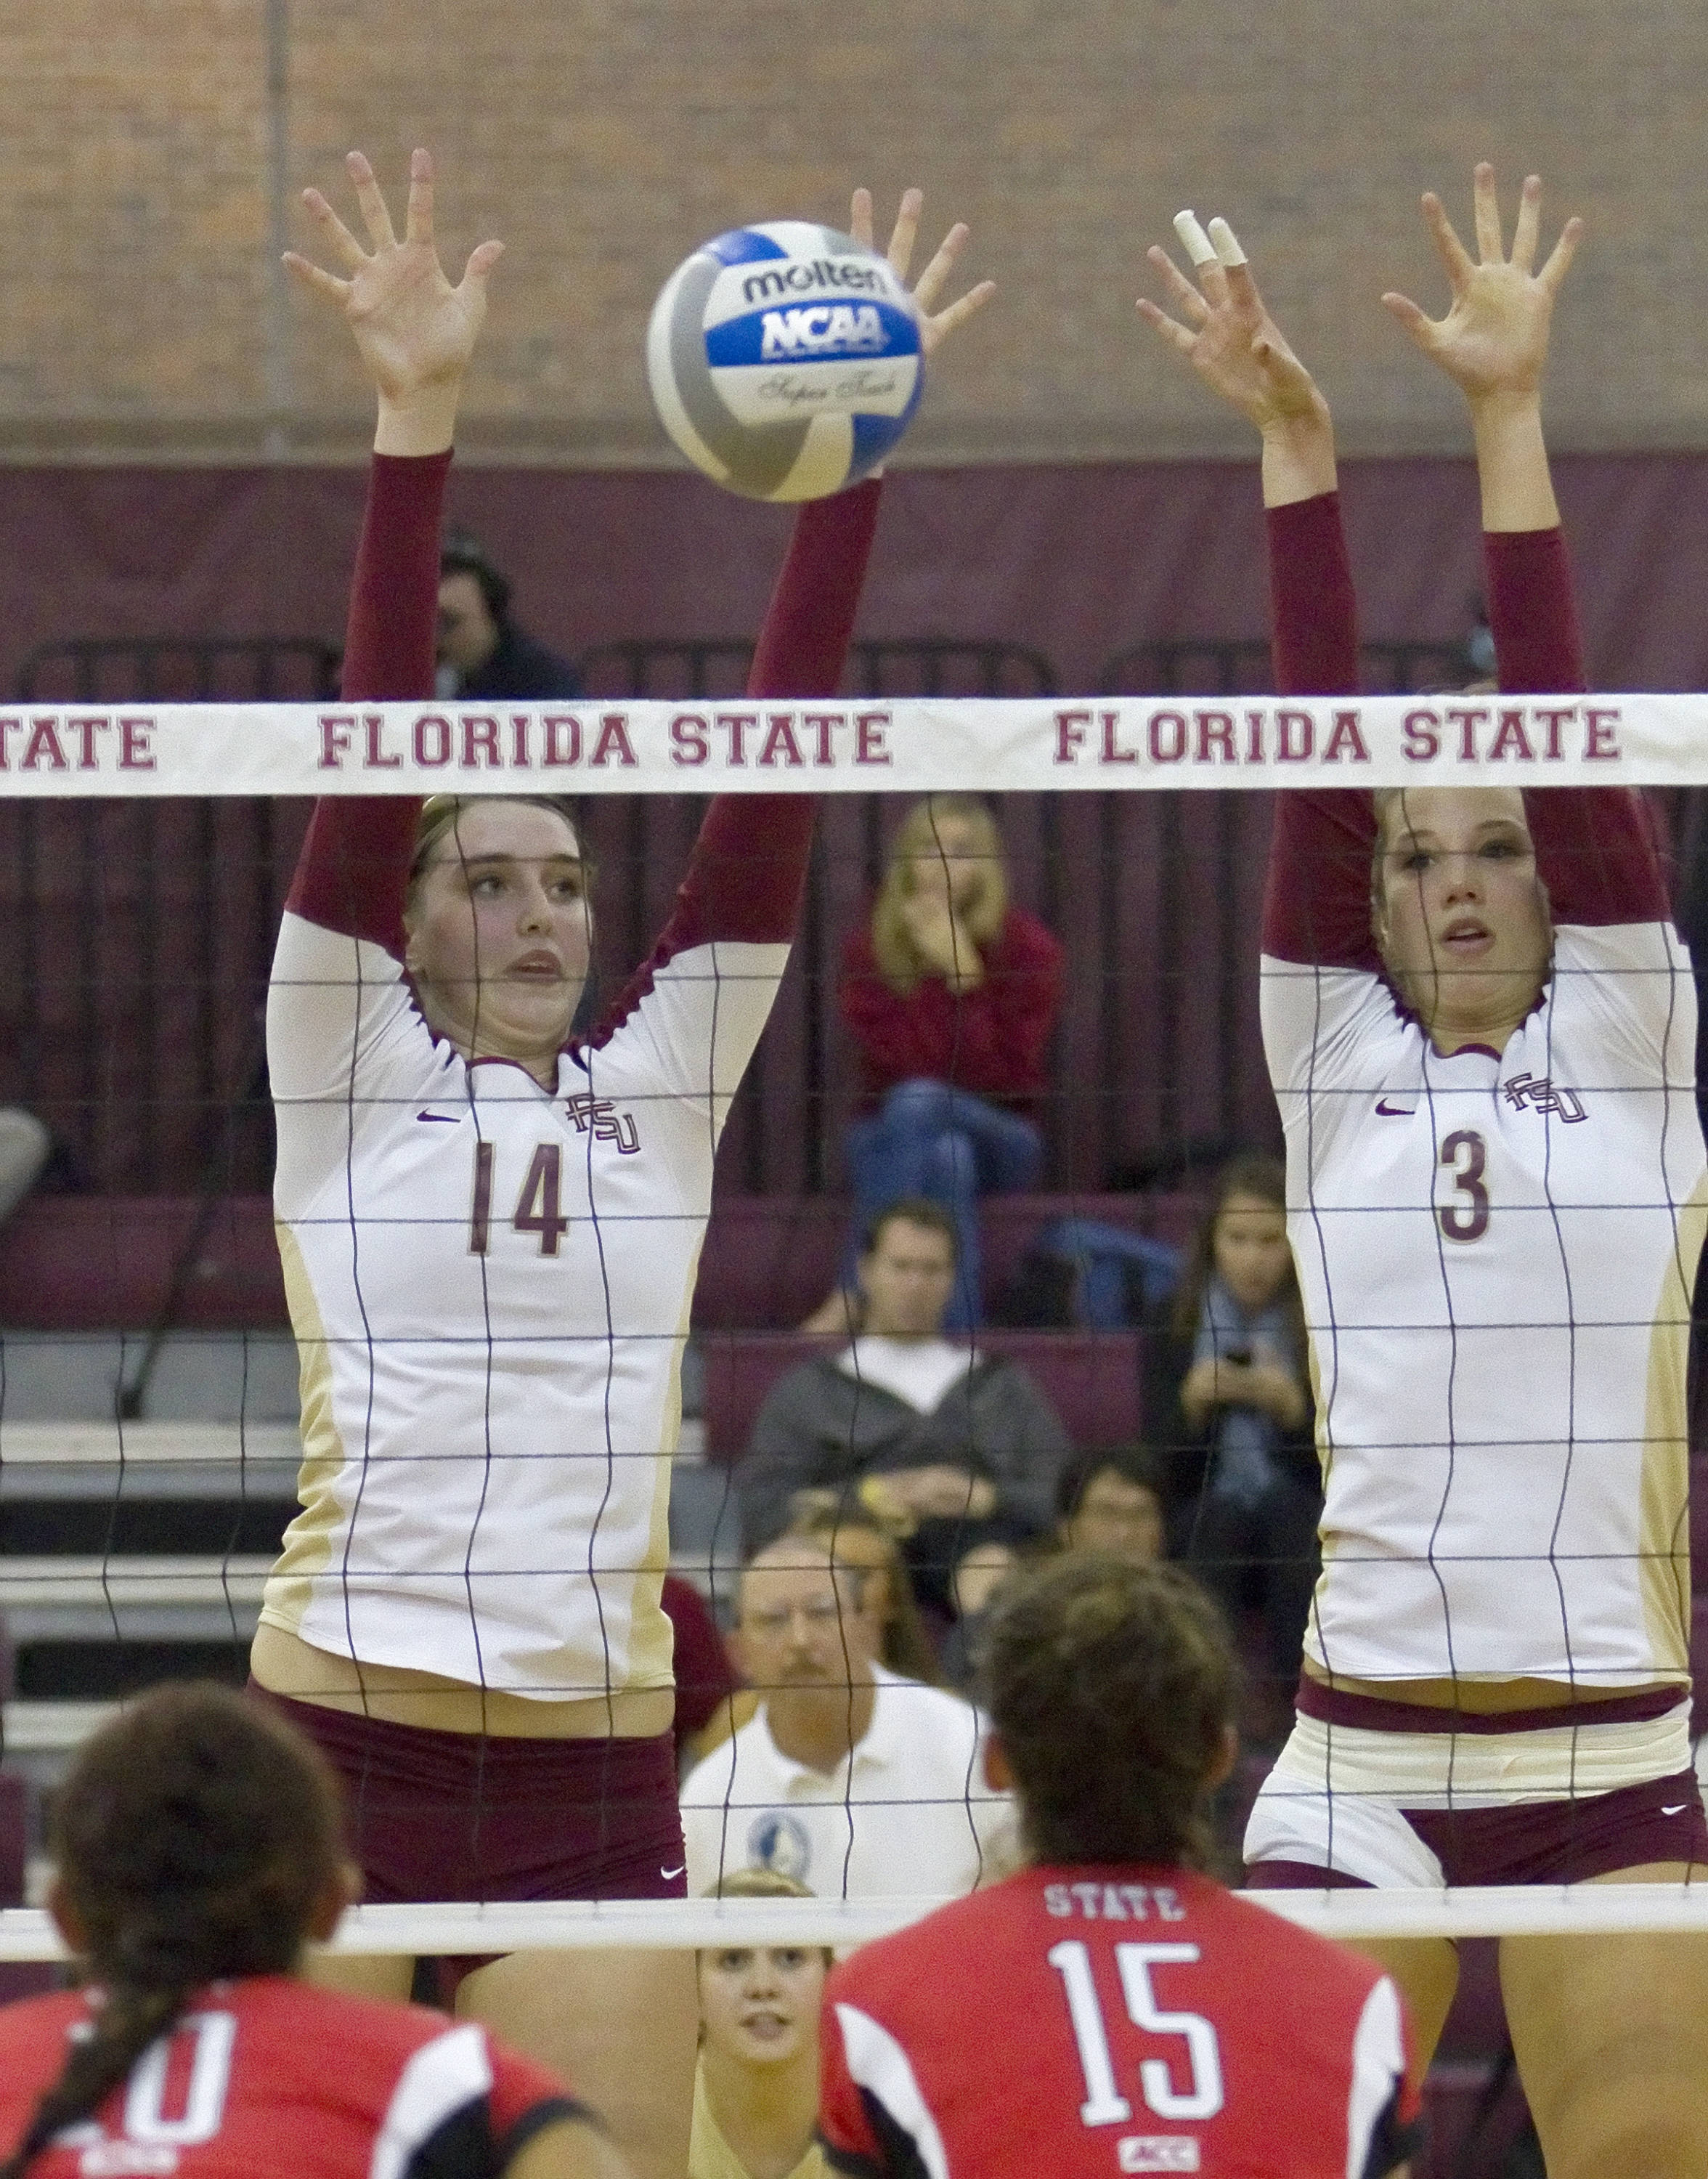 Ashley Neff (14), Jekaterina Stepanova (3), FSU vsNC State 11/04/2011